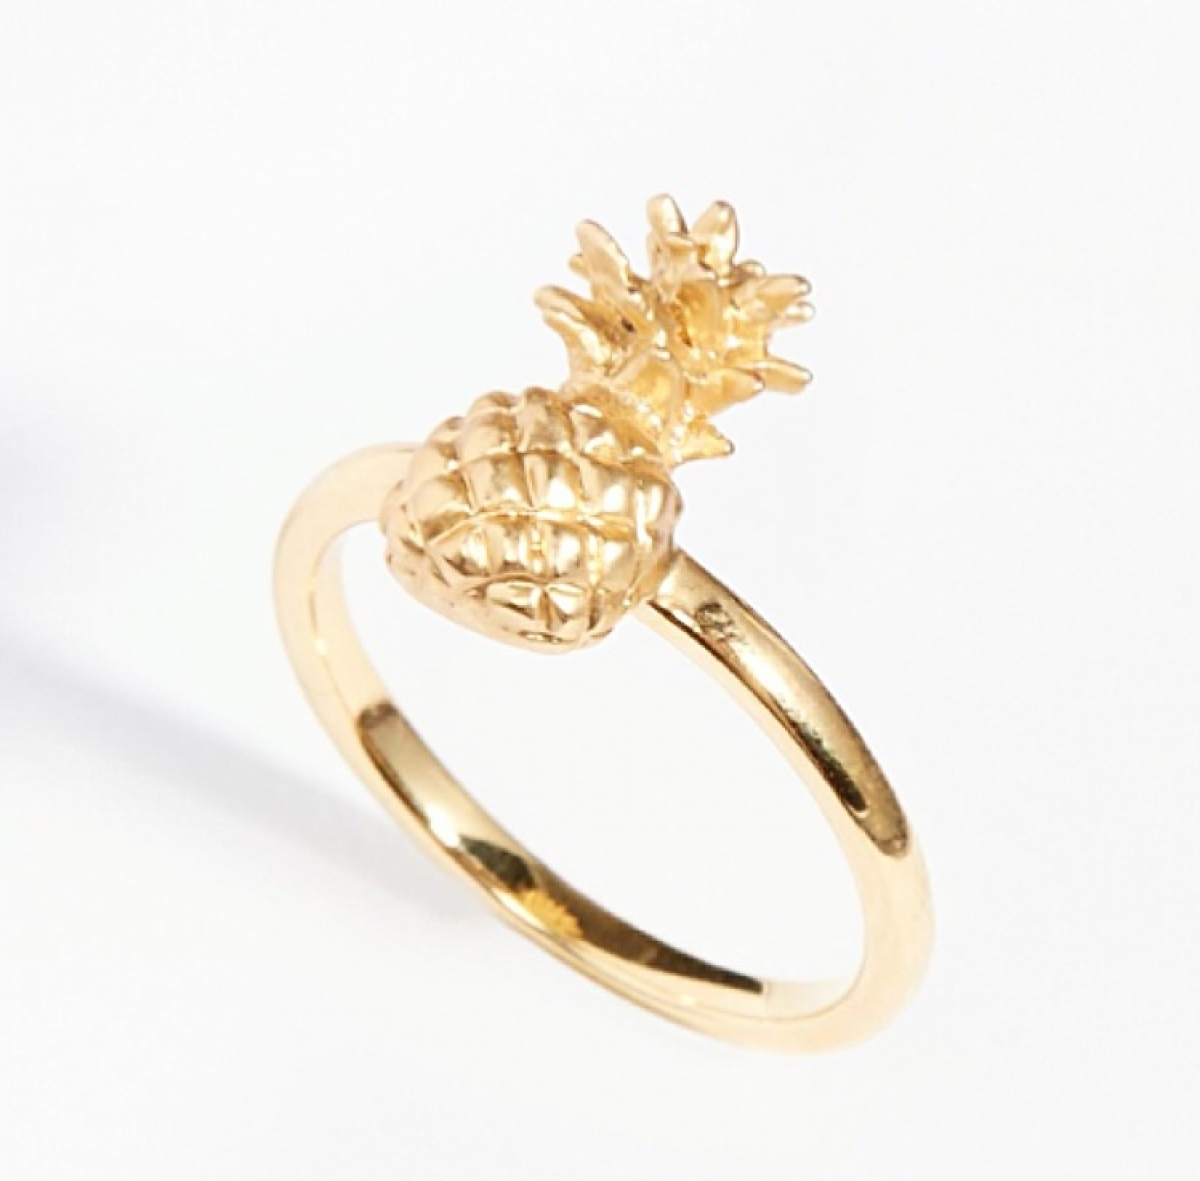 Pineapple Ring - Medium Size Only